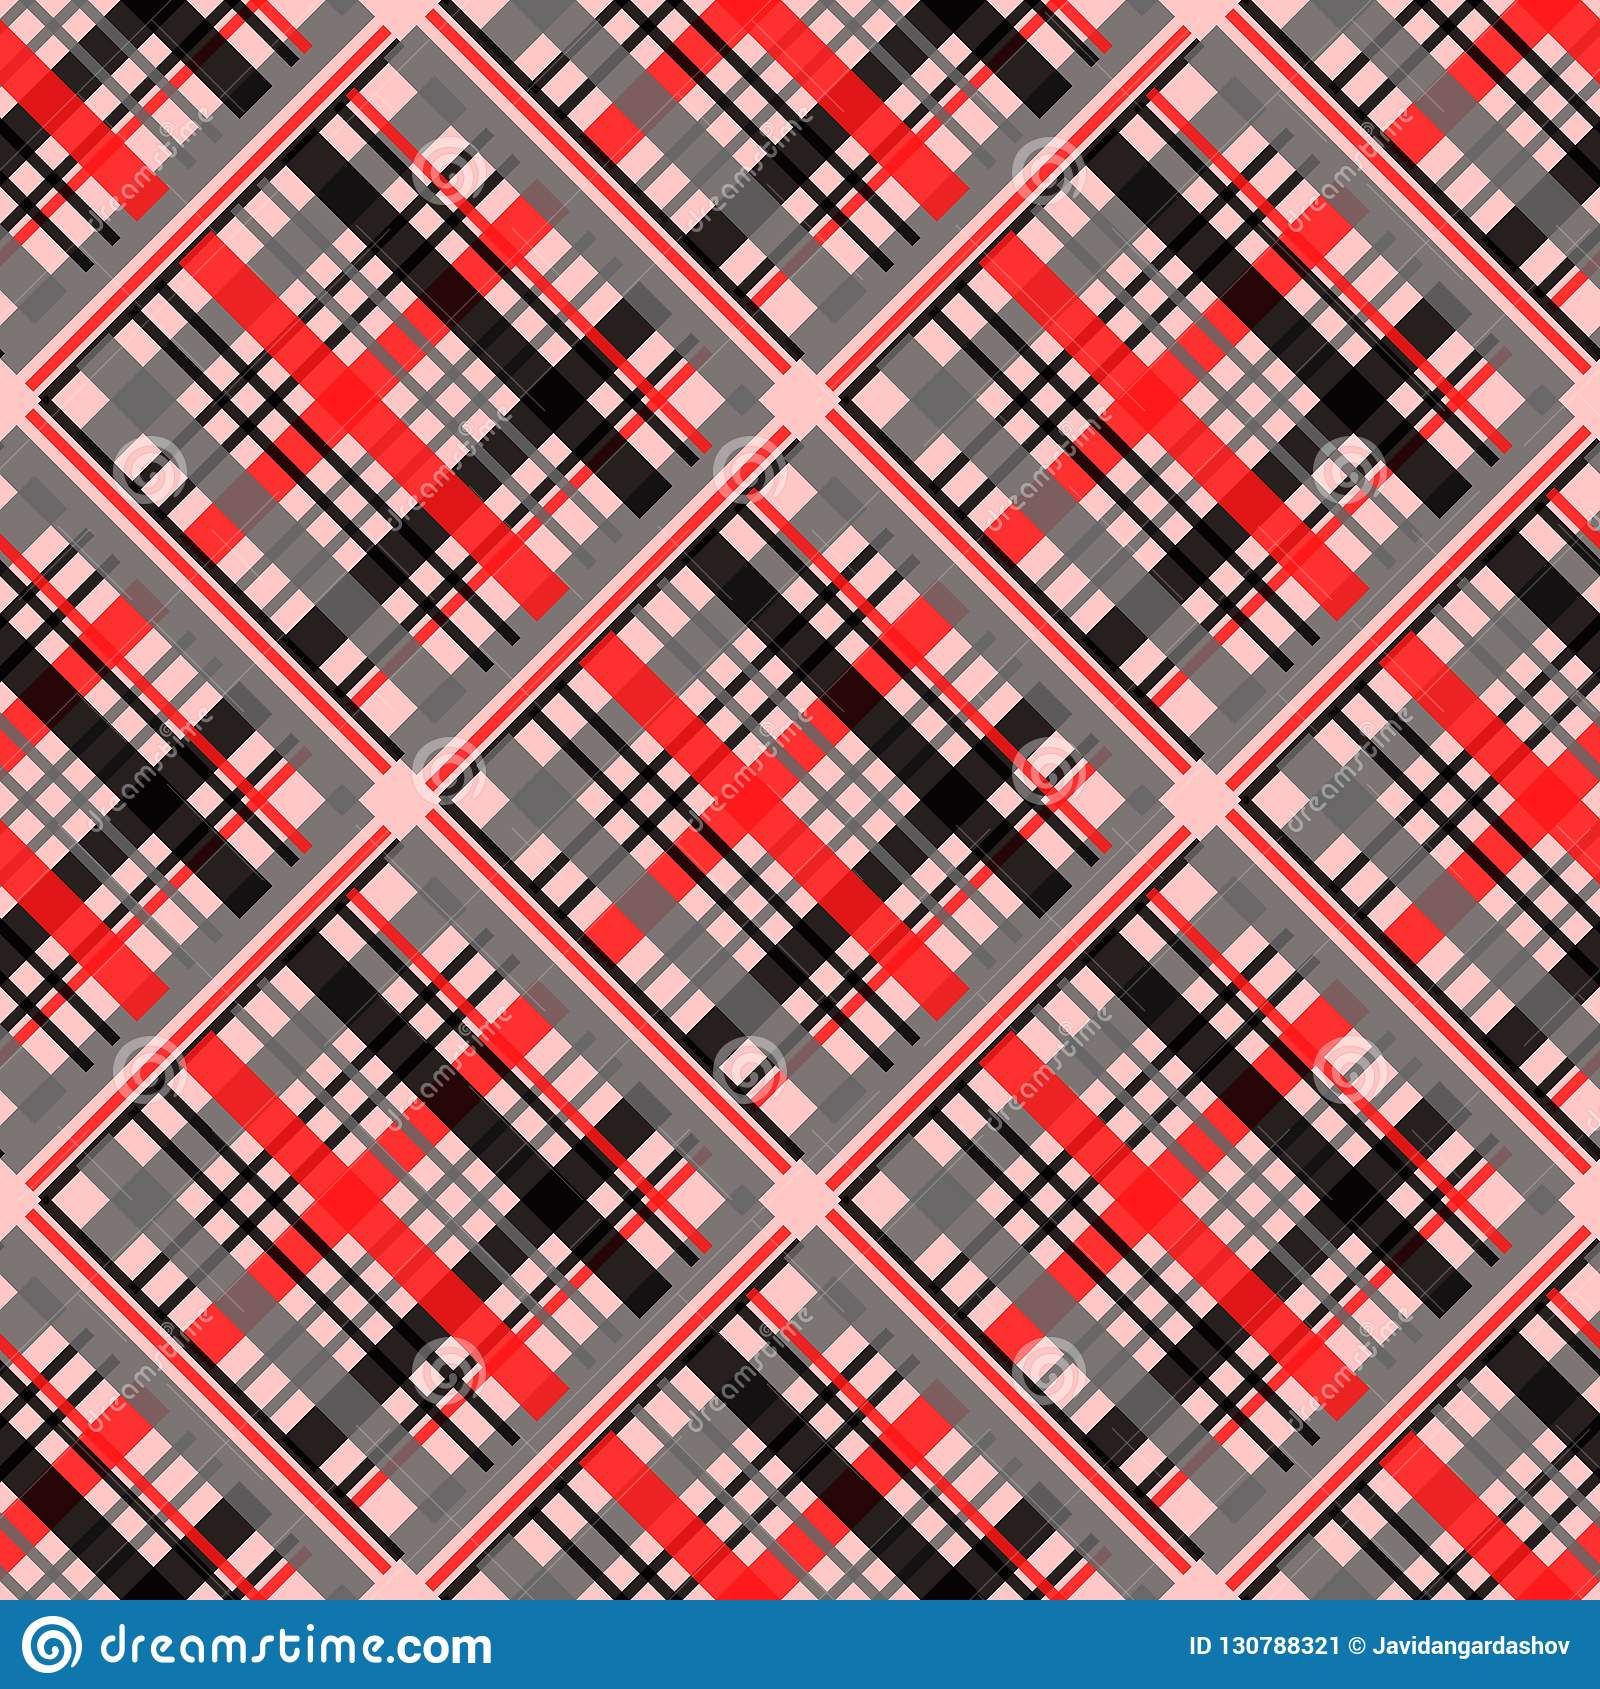 Seamless tartan plaid pattern in stripes of red, black and white. Checkered twill fabric texture. Vector swatch for digital textil